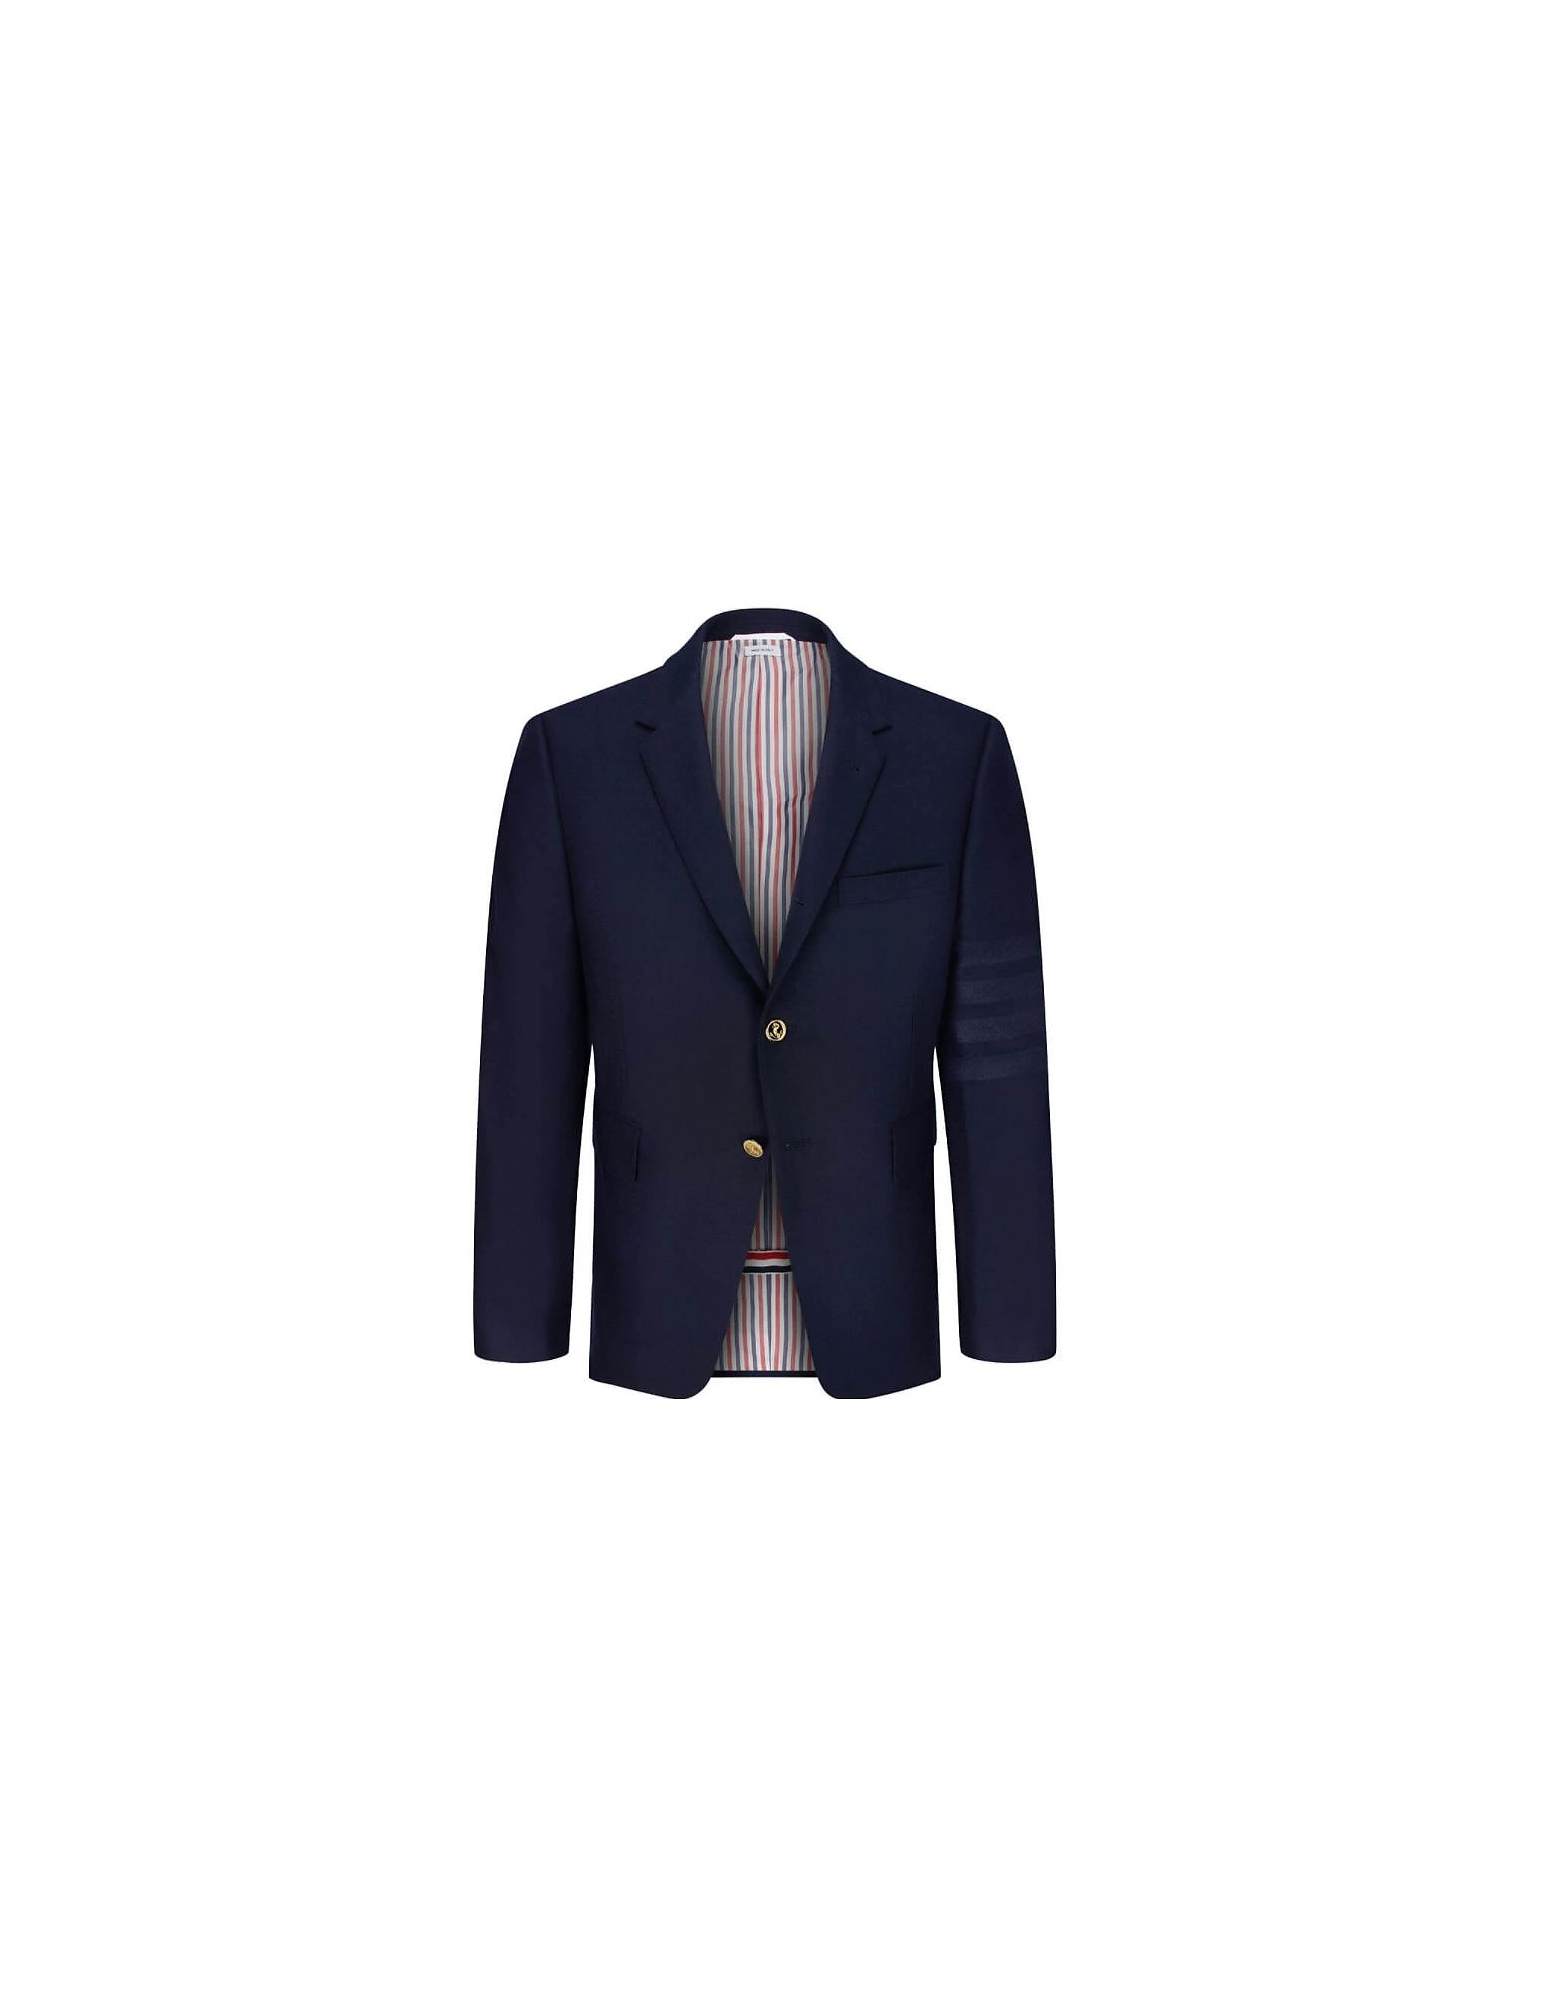 Thom Browne Designer Coats & Jackets, Blue Wool and Cashmere Men's Blazer